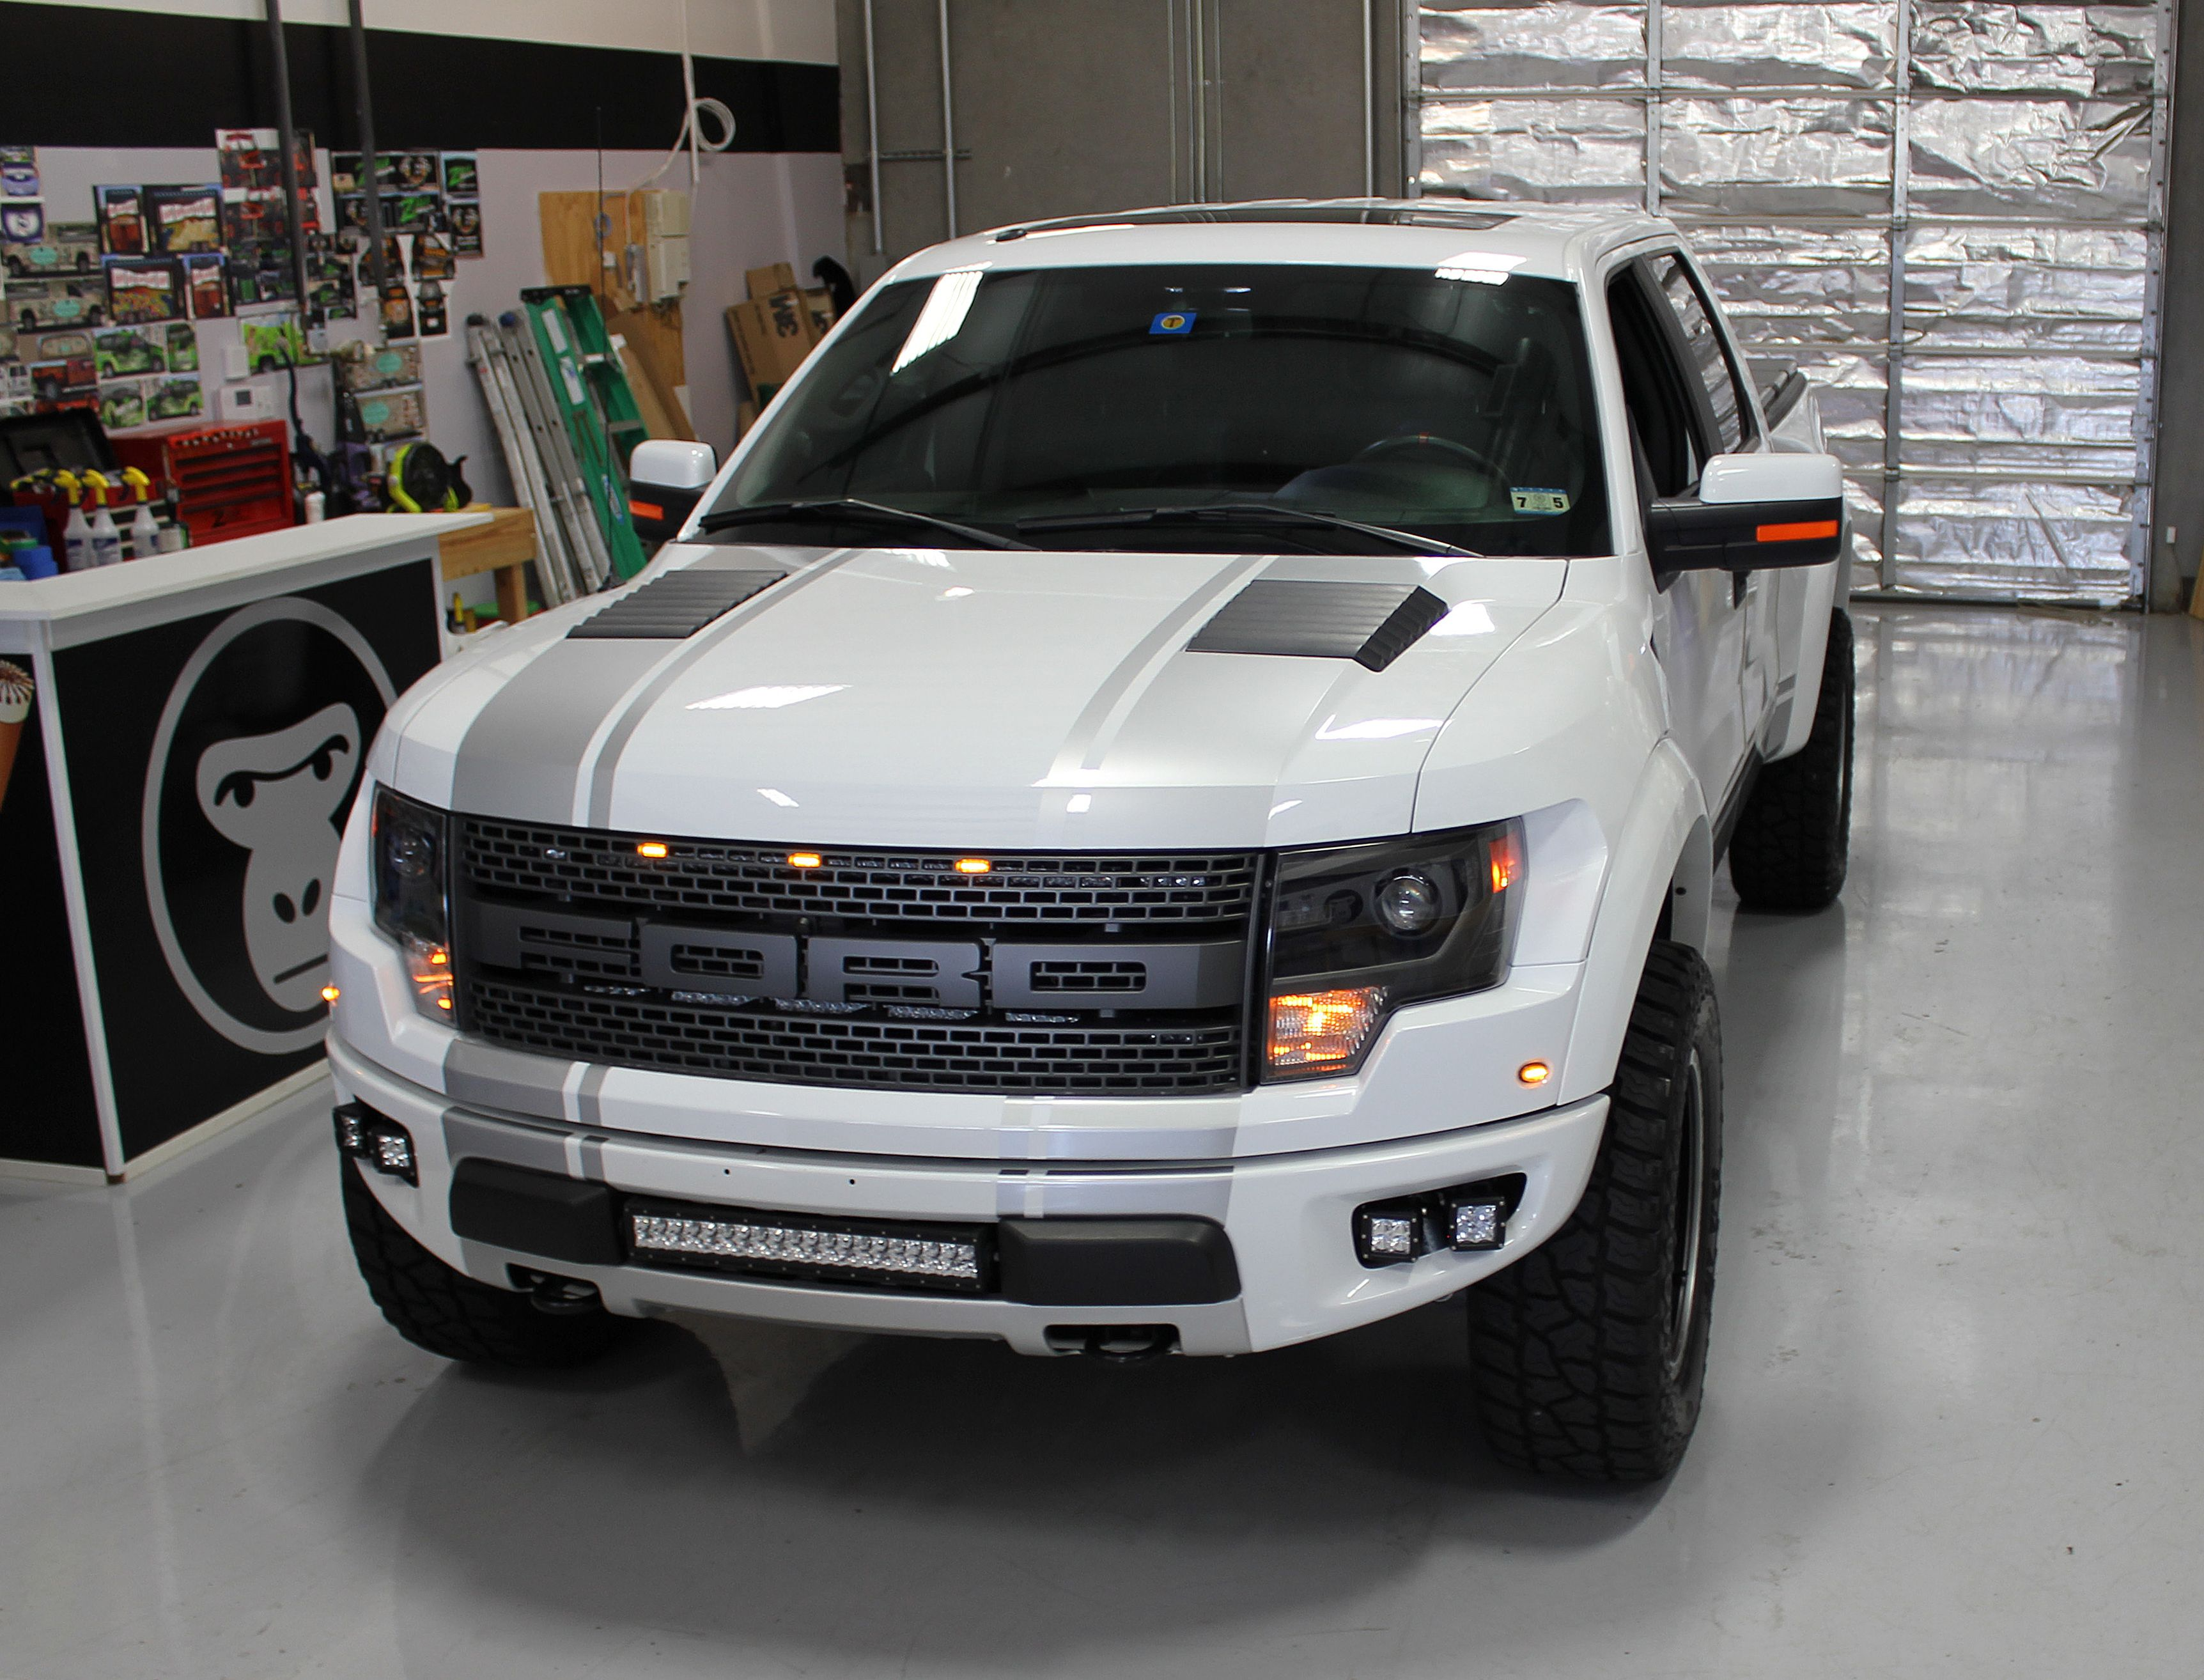 Ford Raptor Racing Stripes White Aluminum Wrap Racing Stripes Truck Wraps Graphics Car Wrap